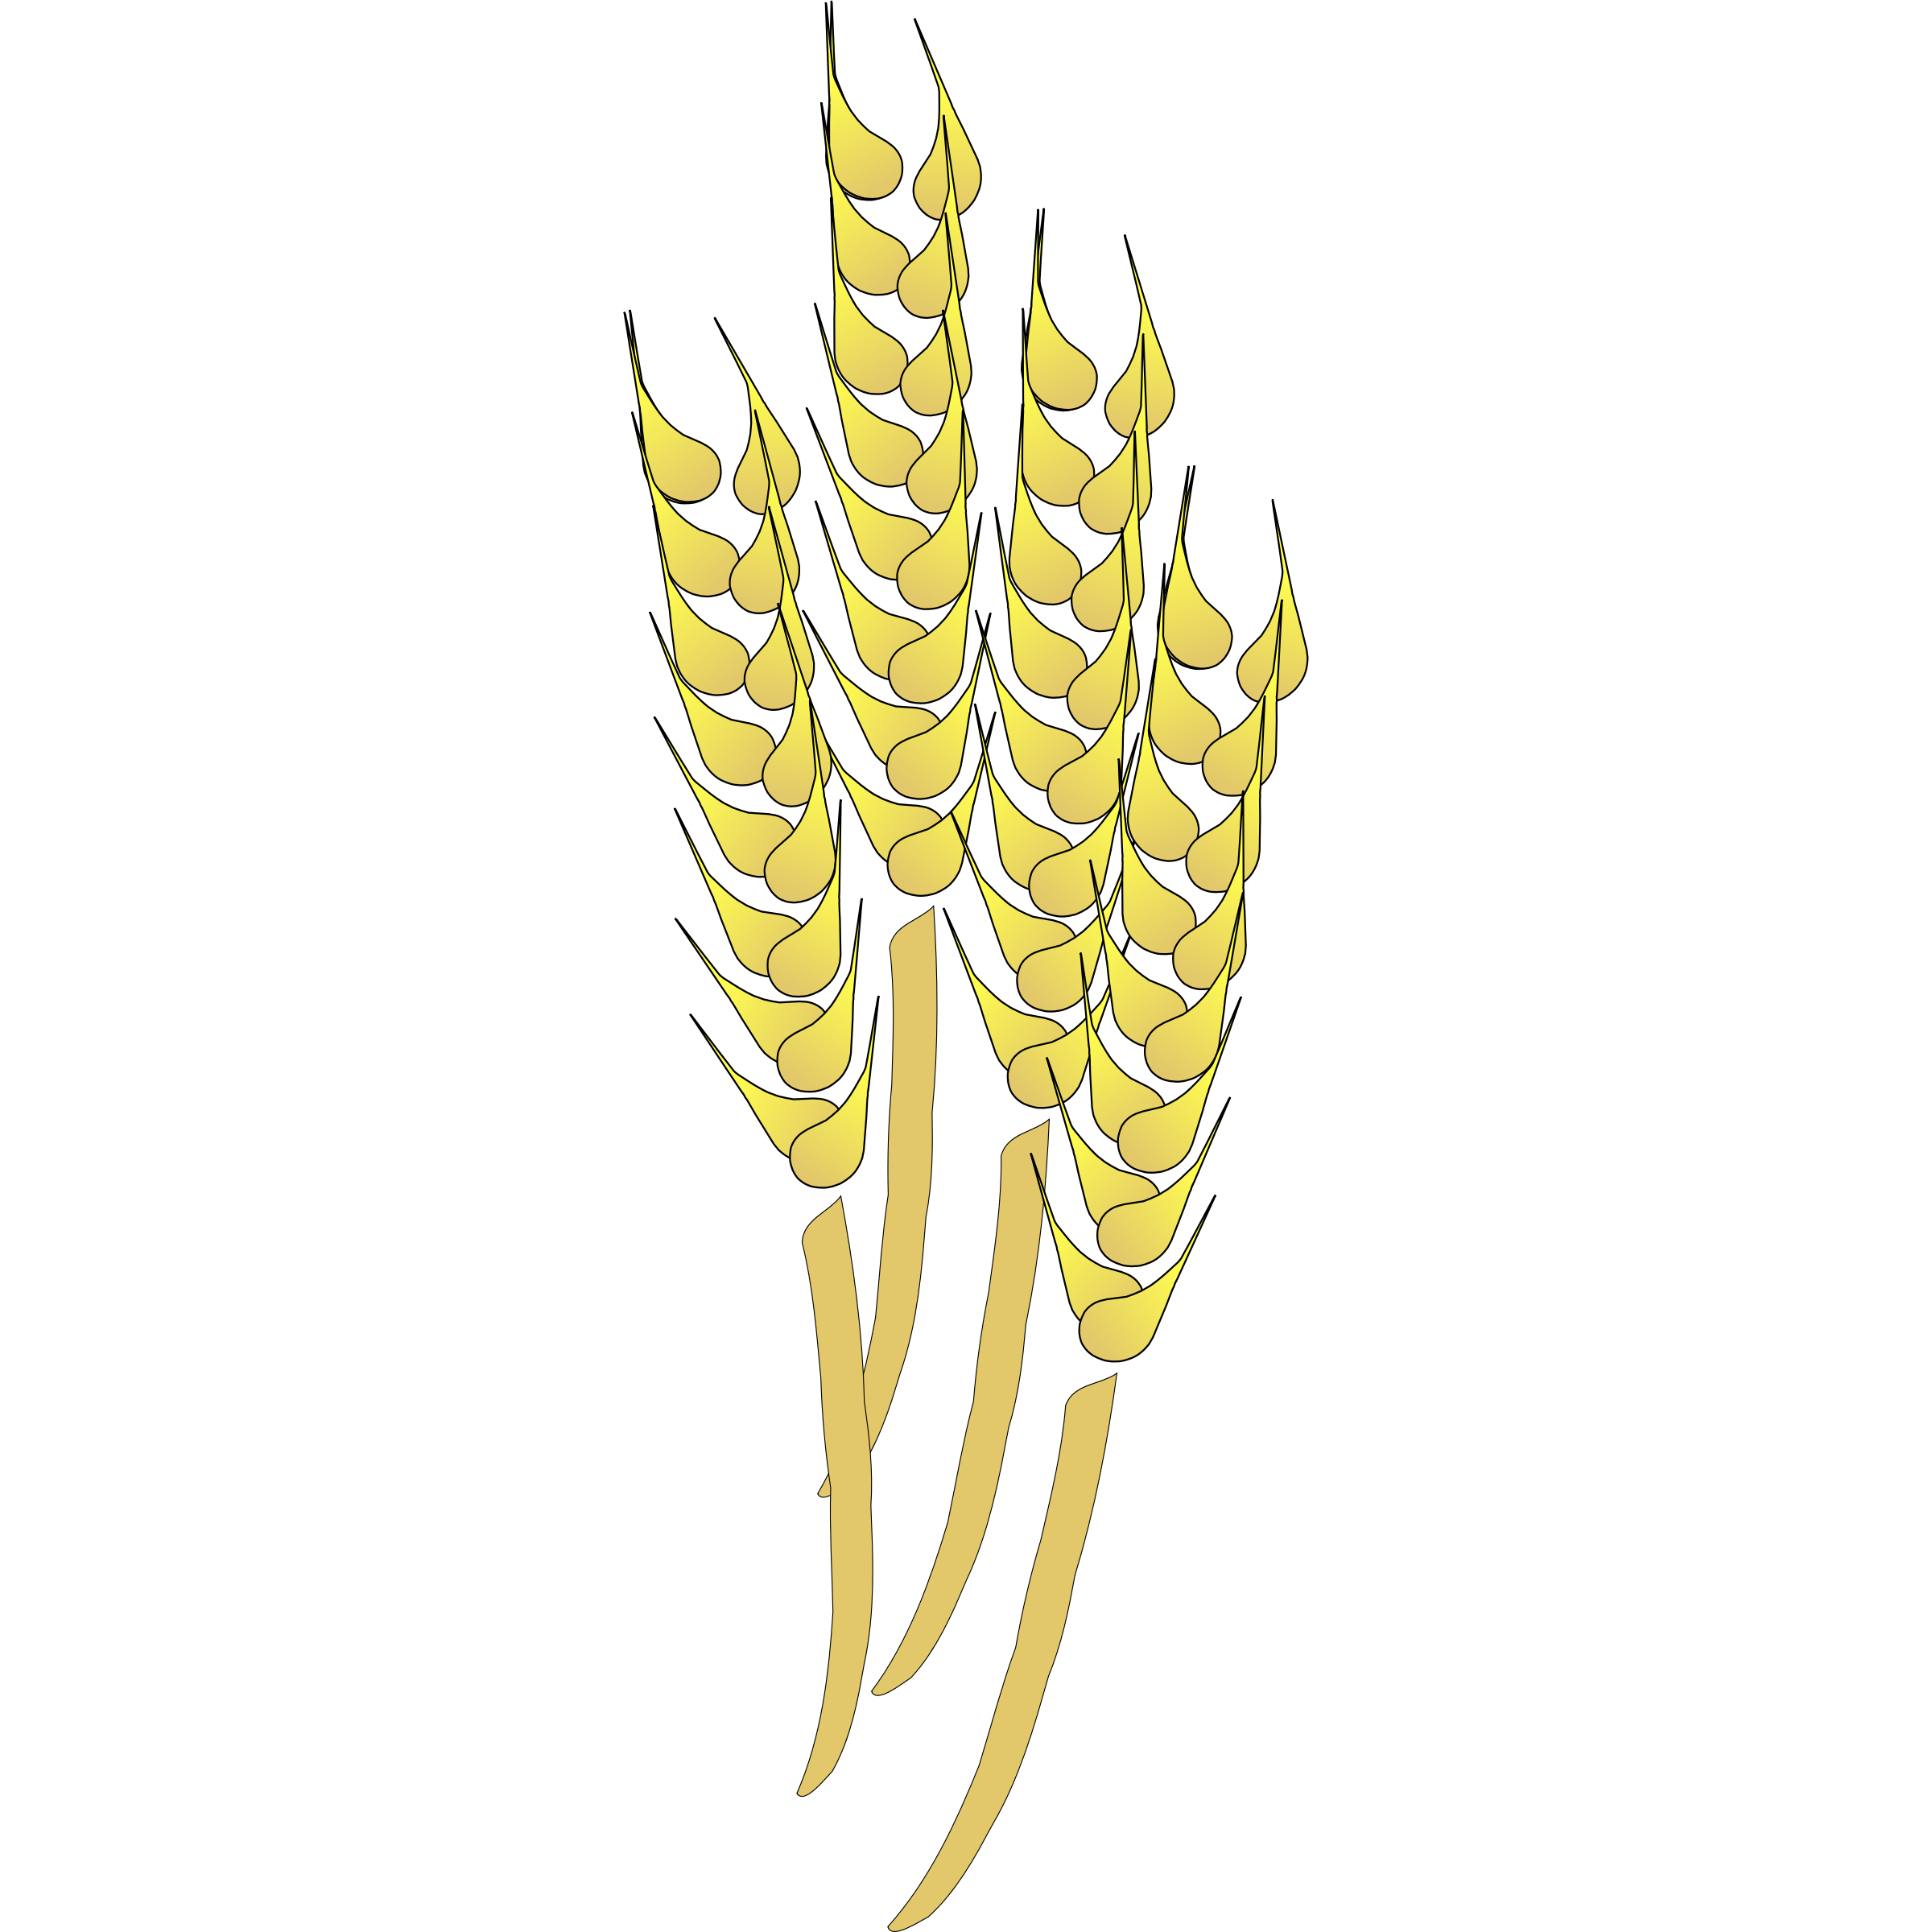 Clipart Wheat.